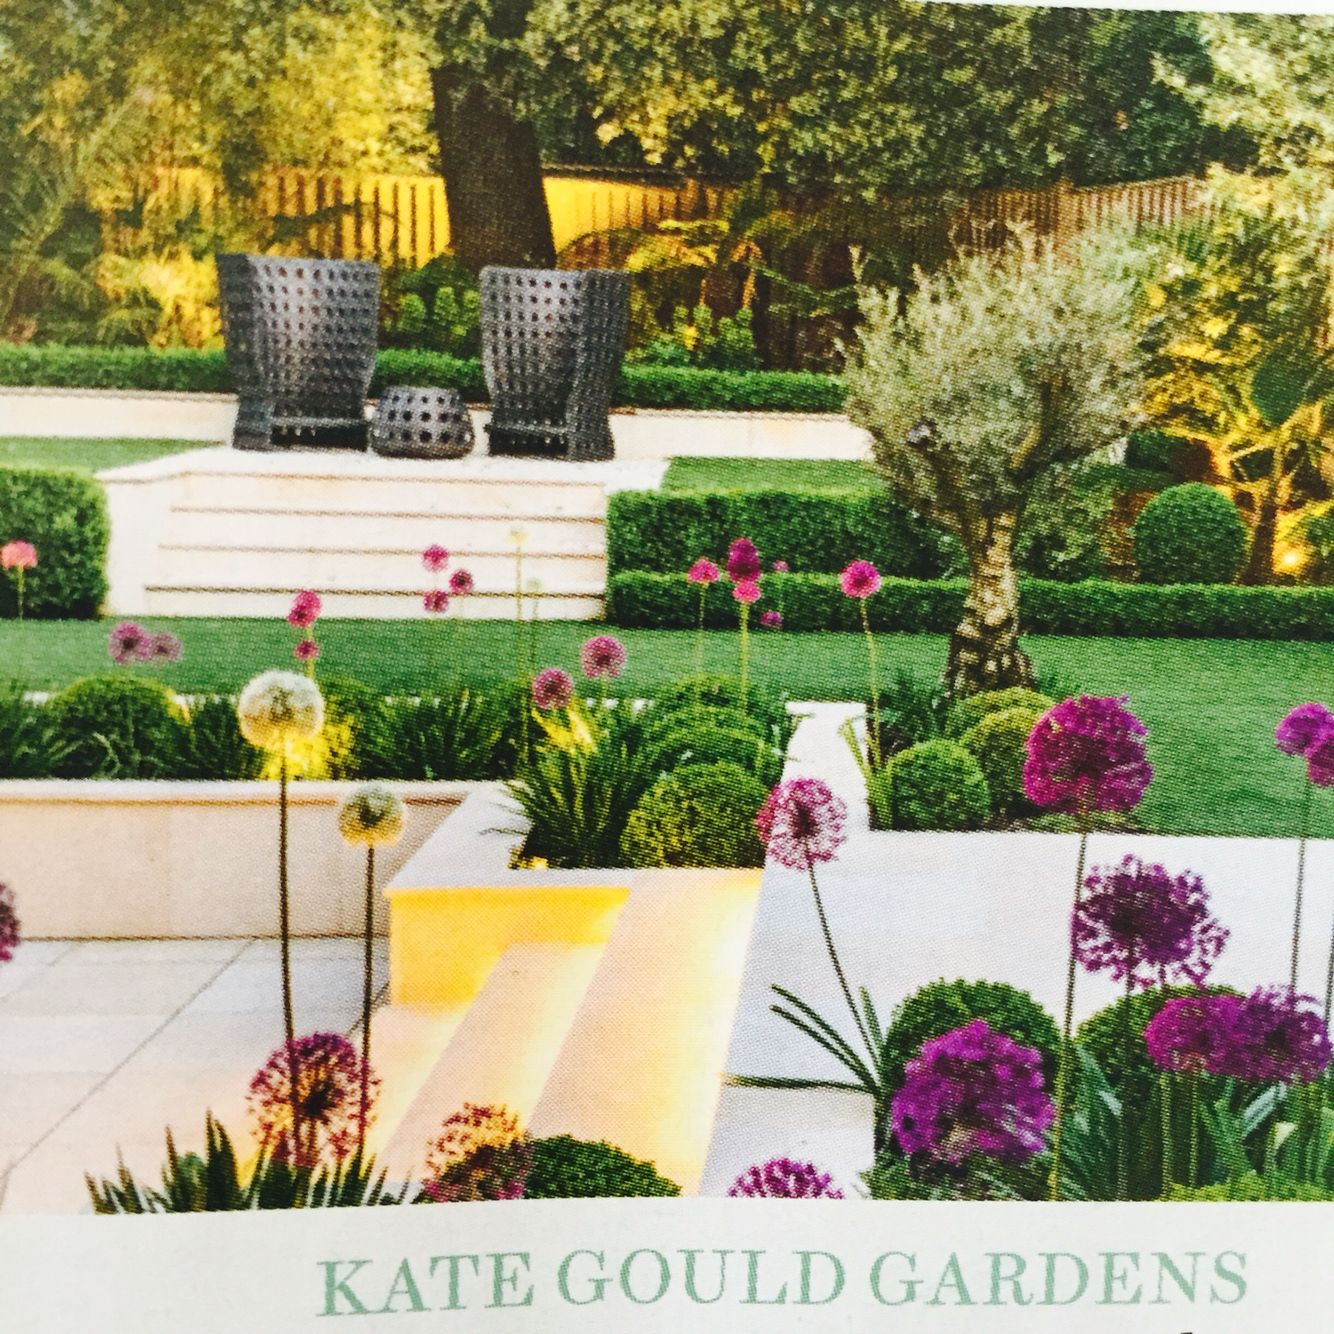 Kate Gould Gardens - from House & Garden June 2016 | Arboretums ...